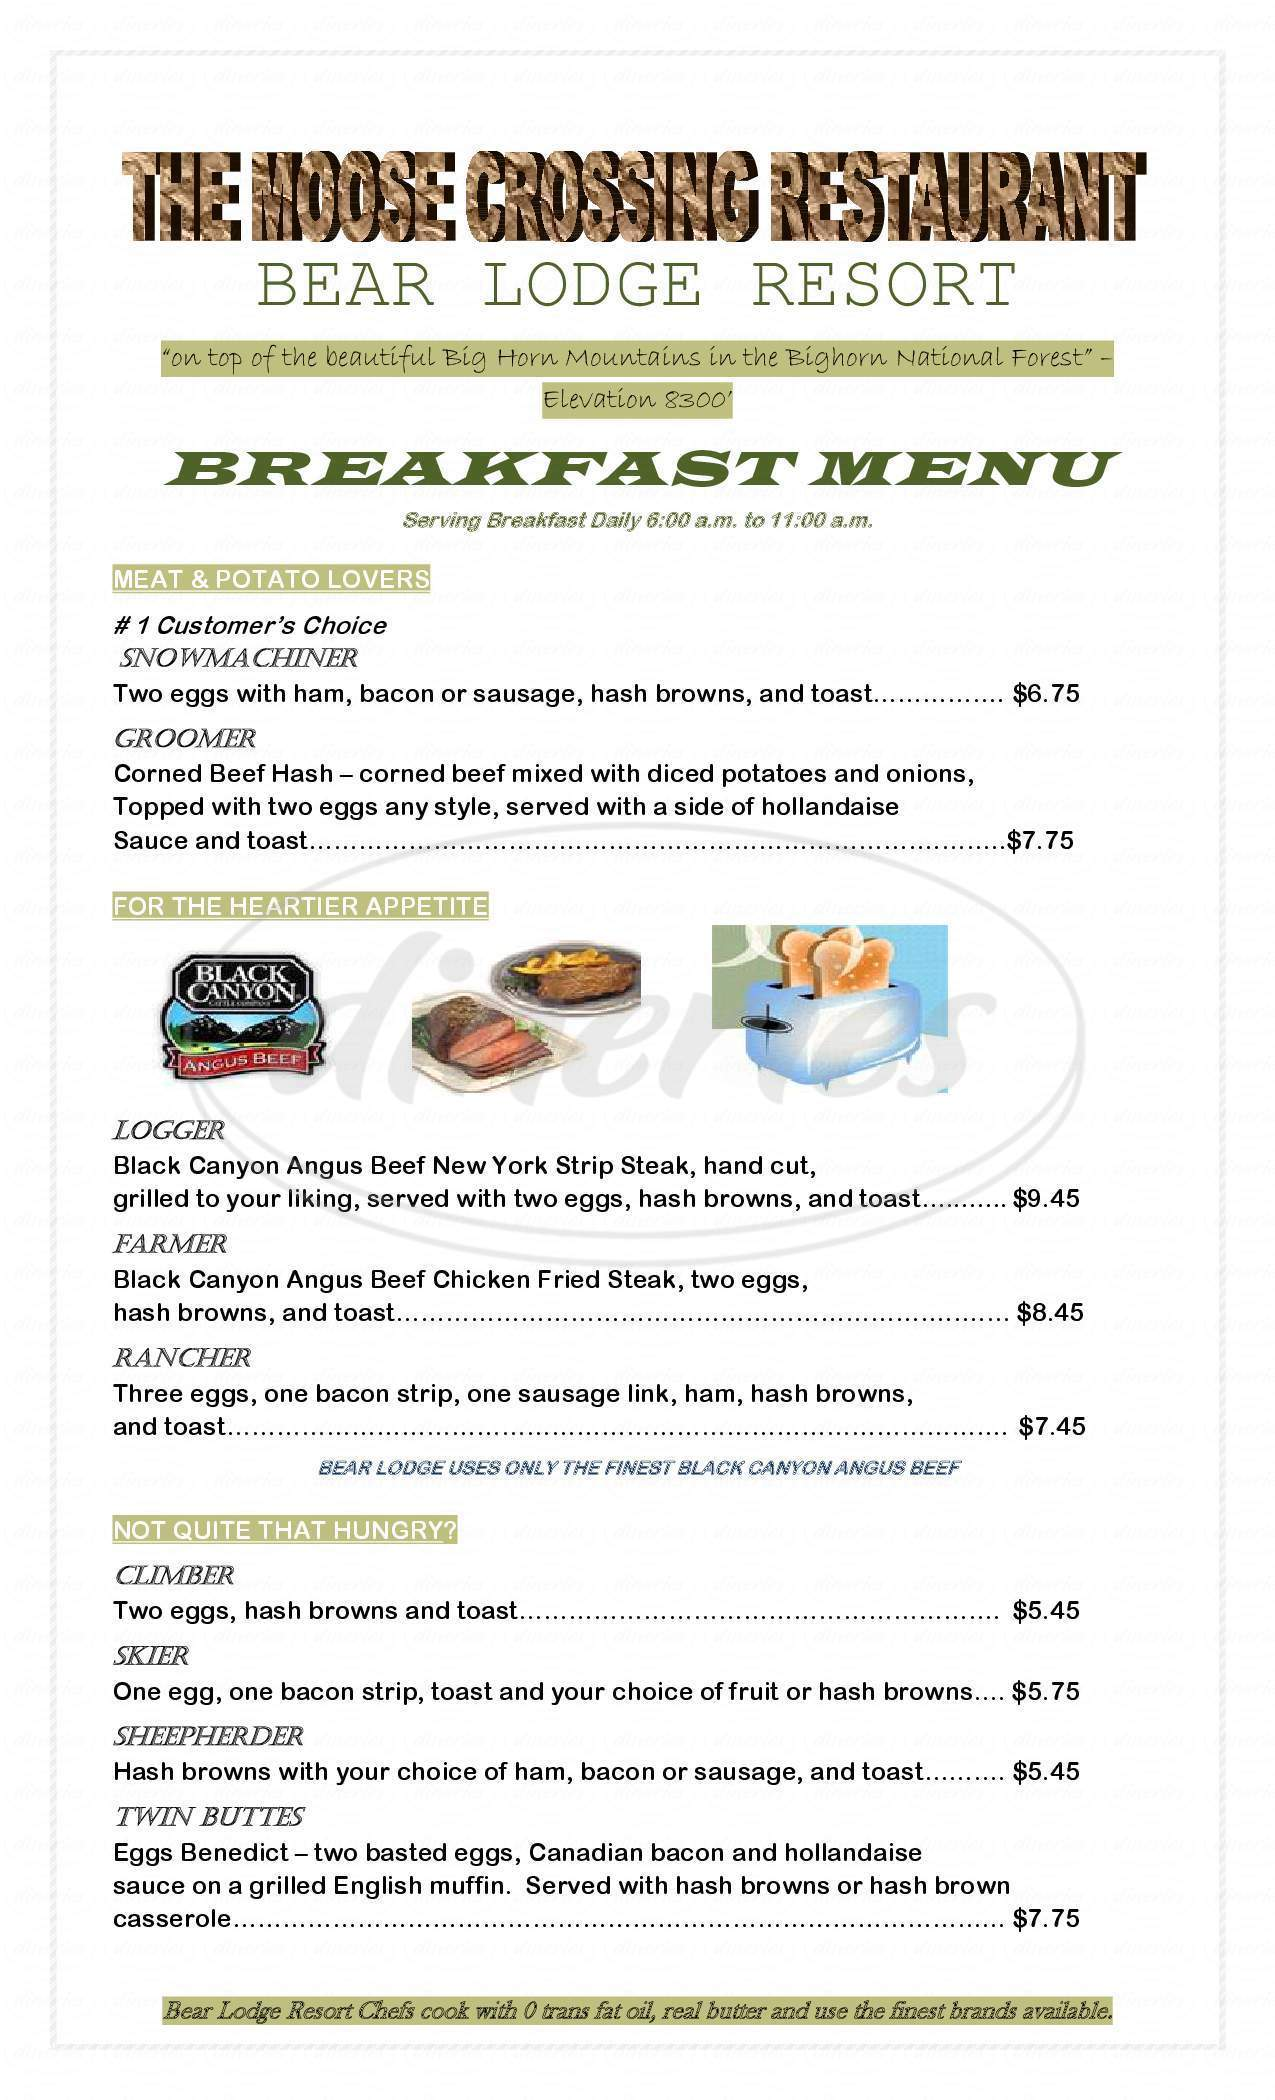 menu for Bear Lodge Resort,  Big Horn Mountains